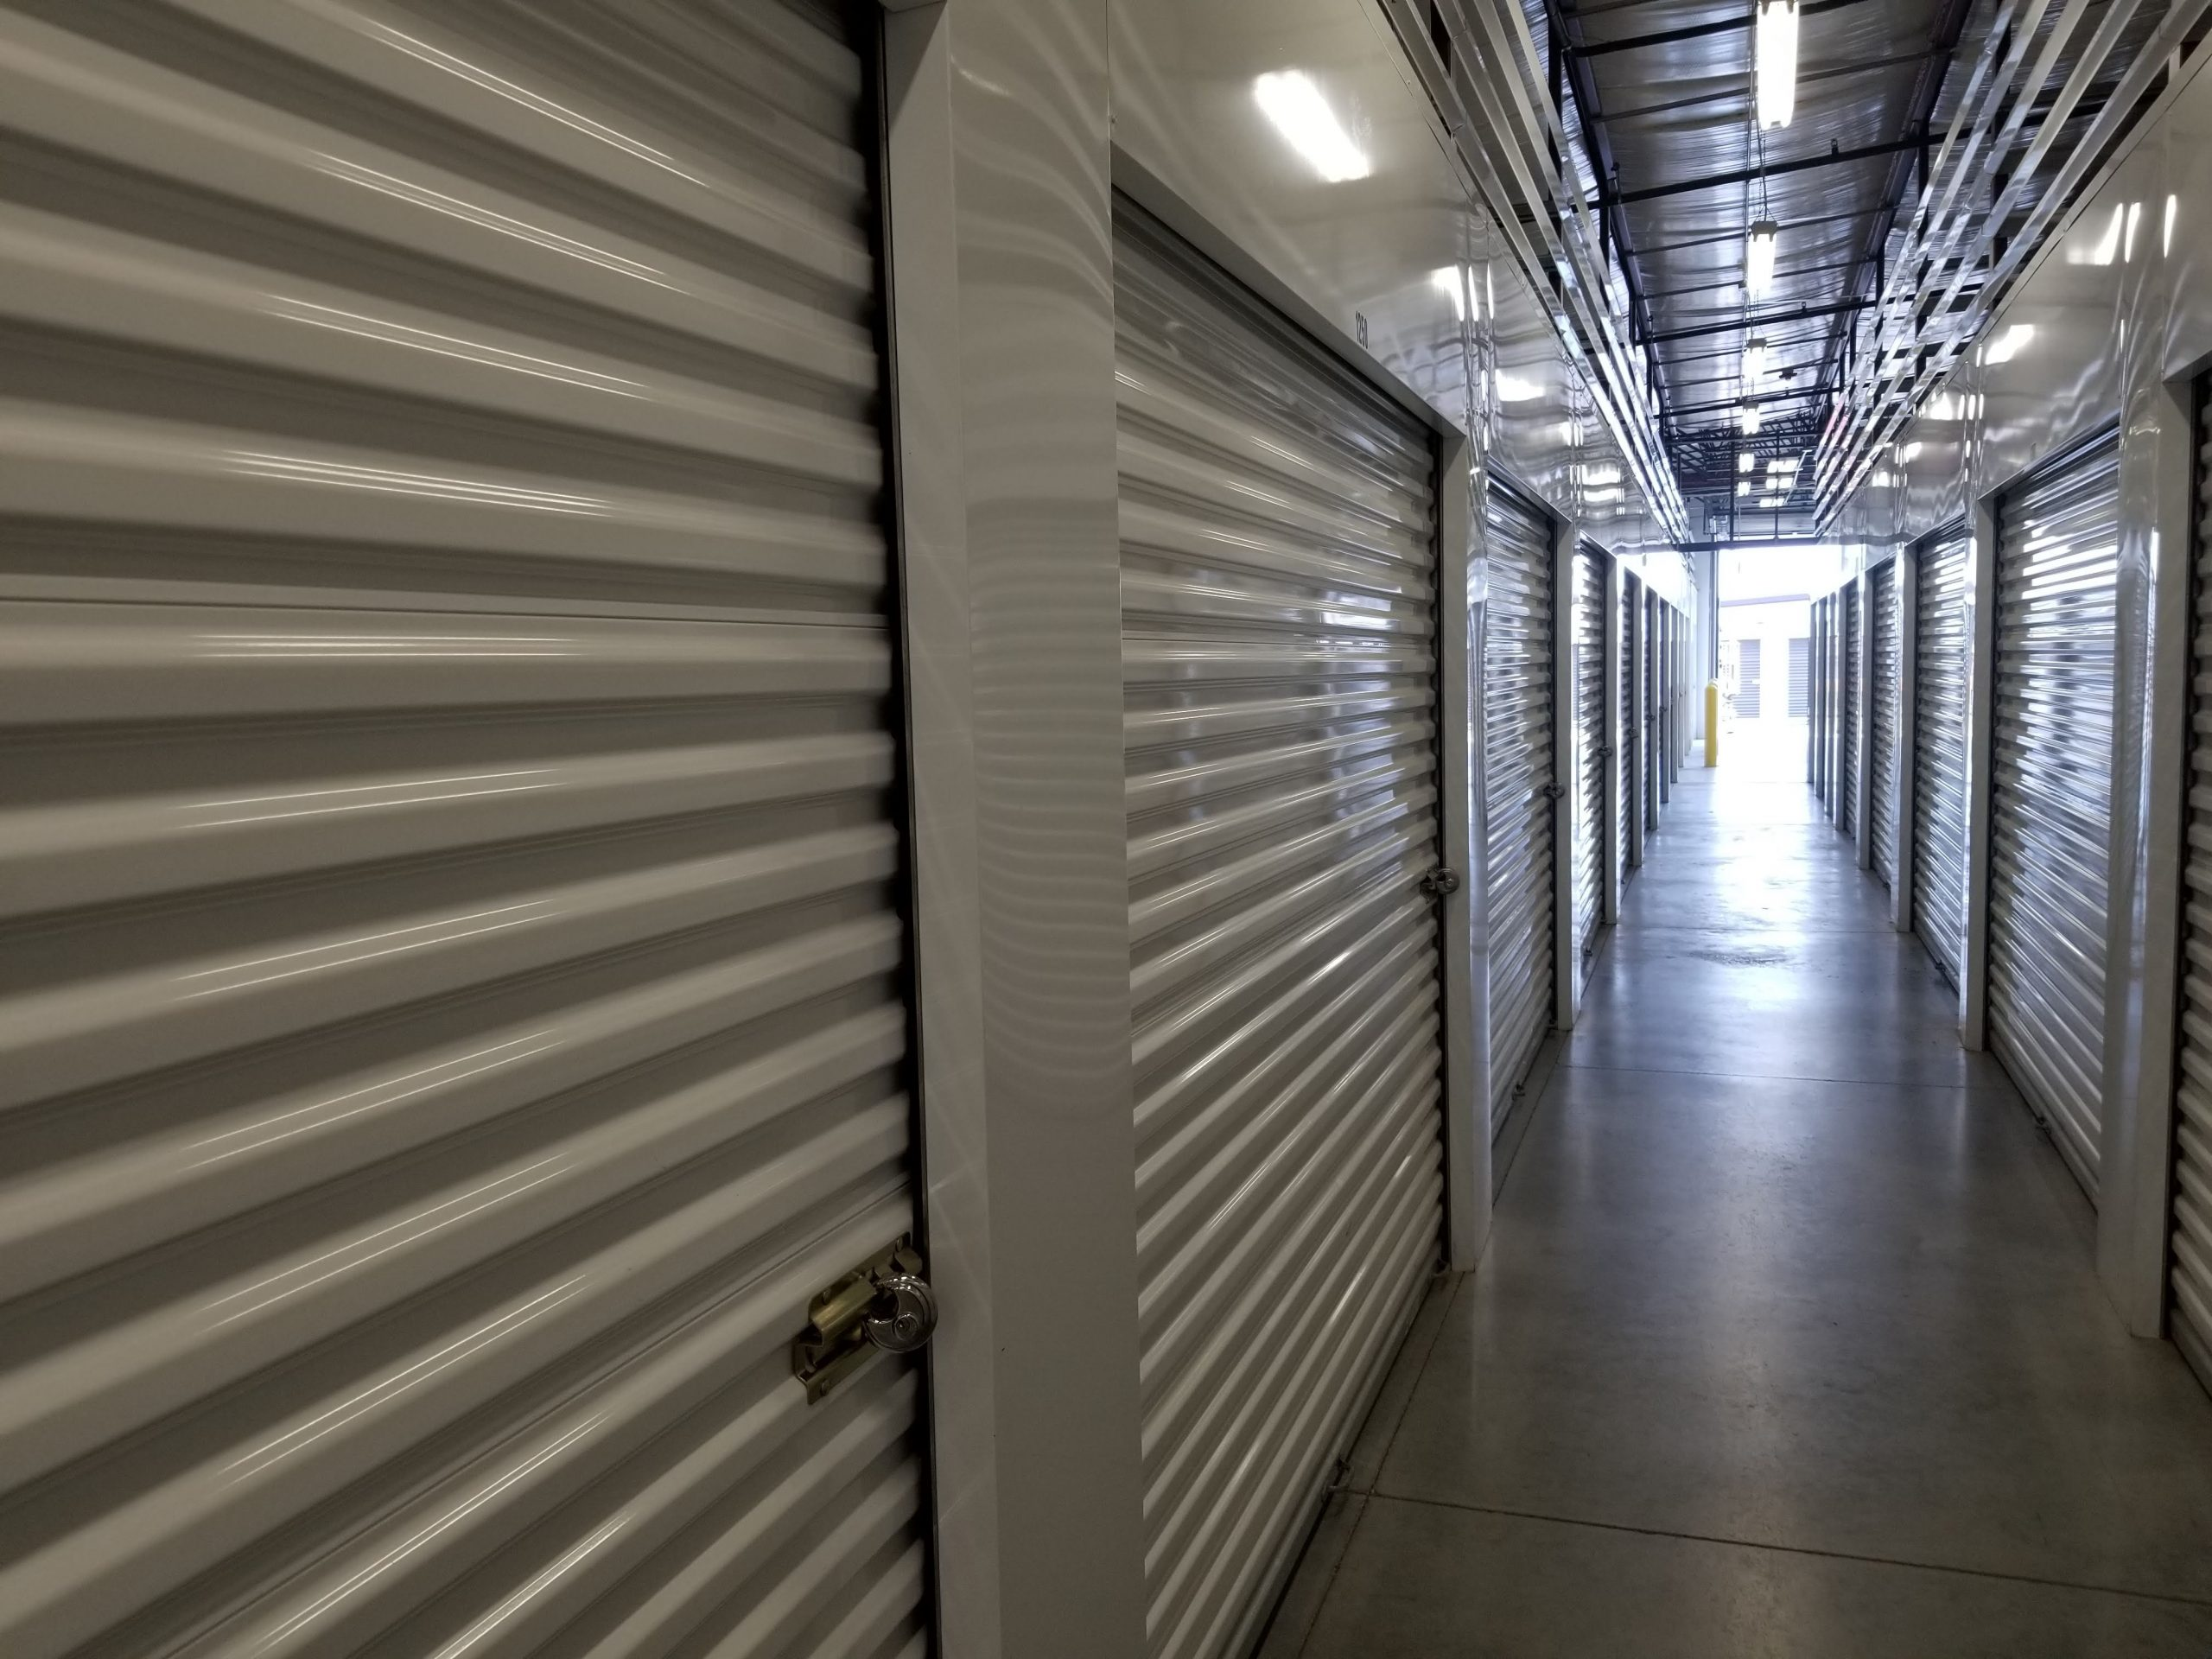 4 CHARACTERISTICS OF HIGH QUALITY COMMERCIAL GARAGE DOORS